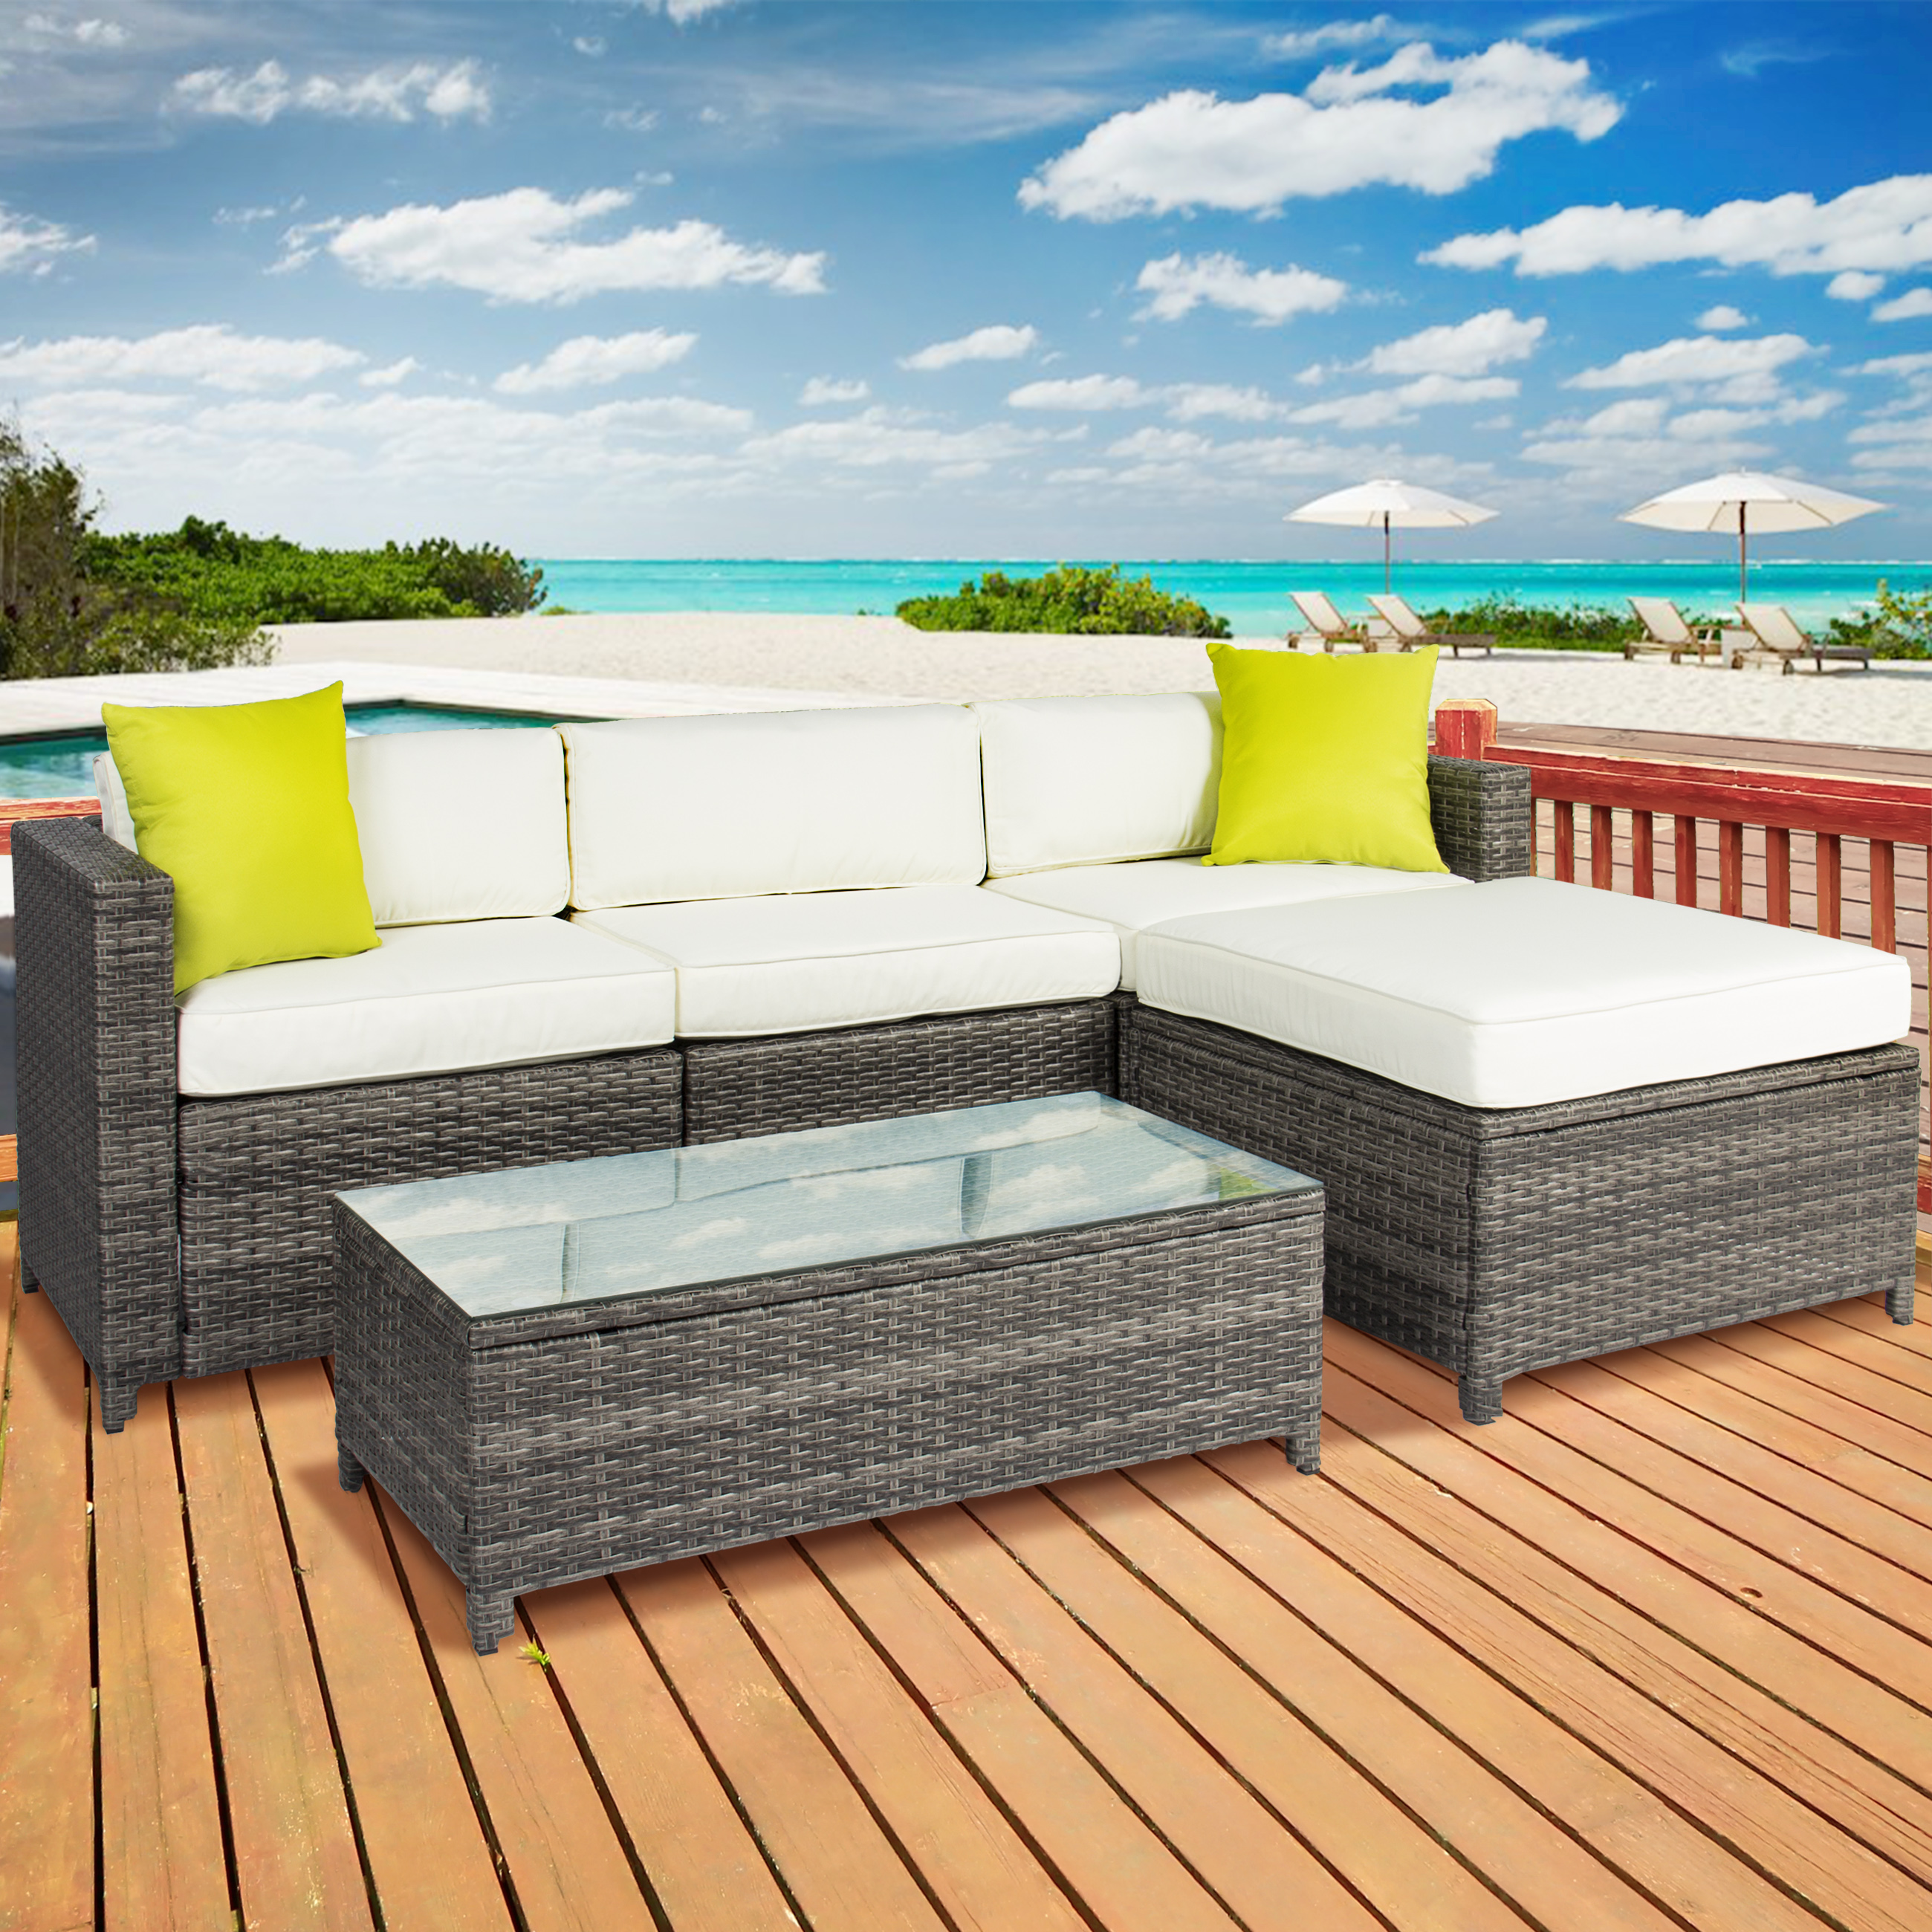 Outdoor Patio Furniture Cushioned 5PC Rattan Wicker Aluminum Frame Sectional Sofa Set